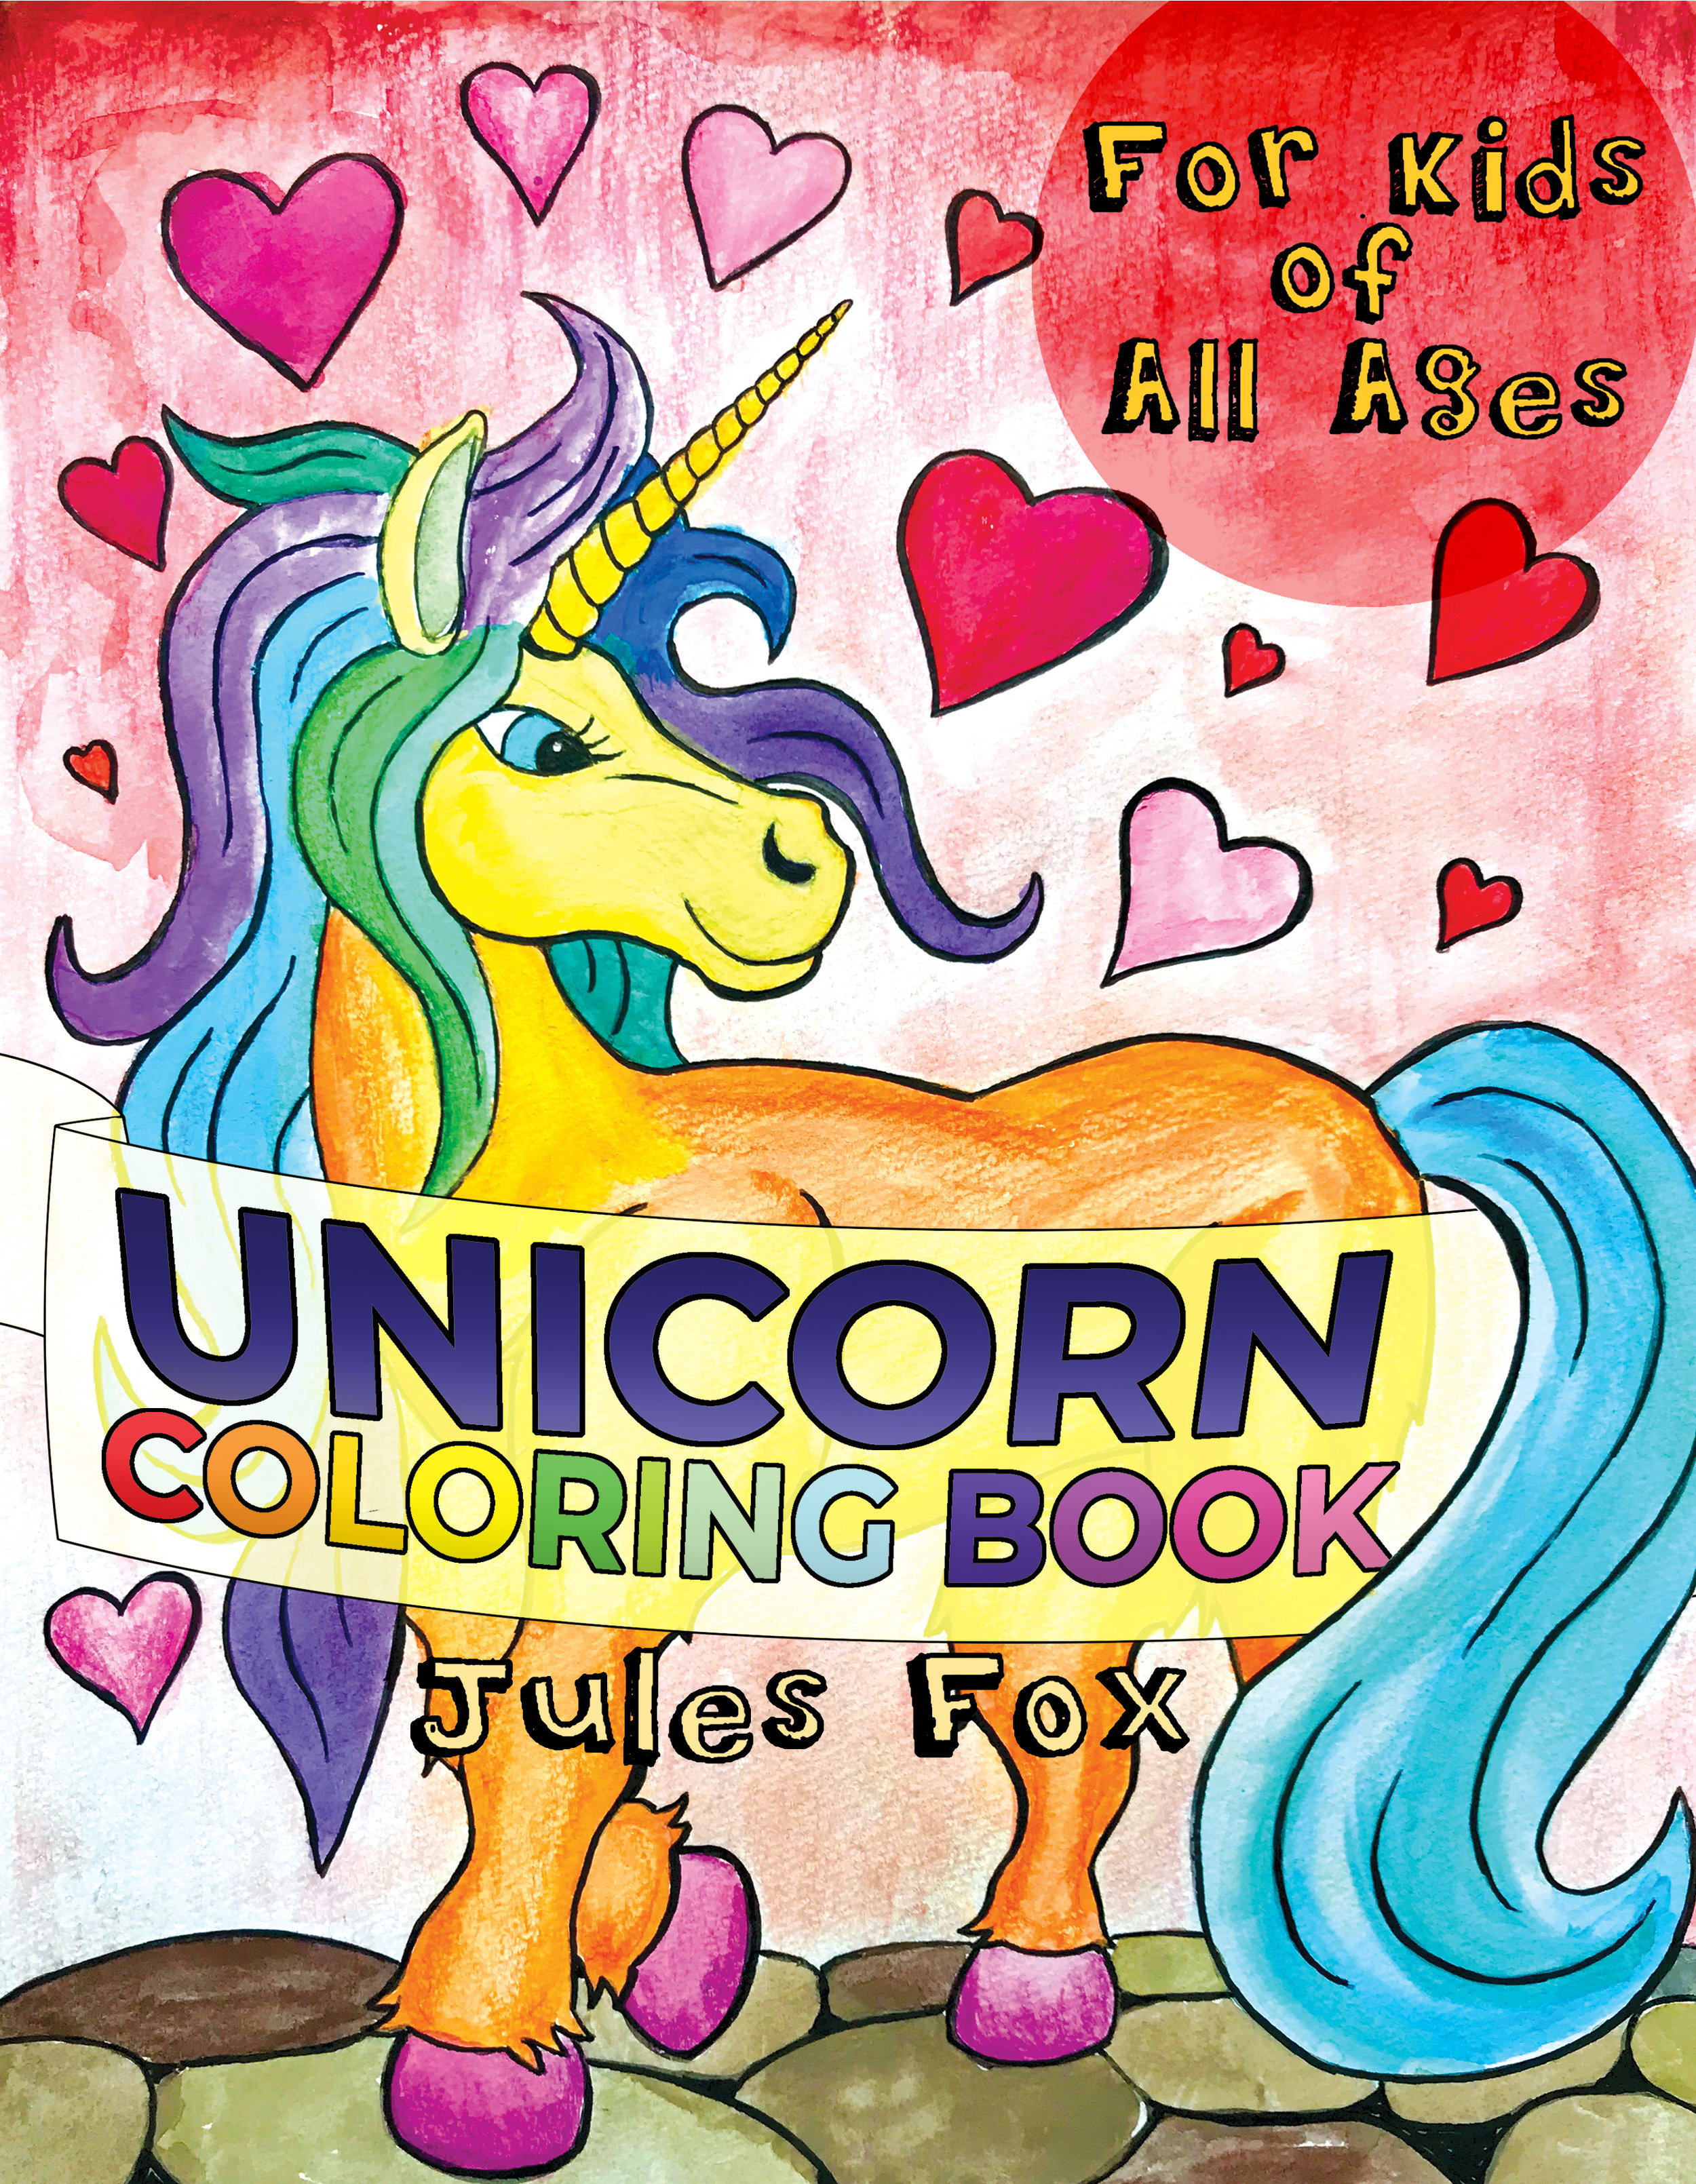 The Fantasy Unicorn Coloring Book  is available now, for kids of all ages!